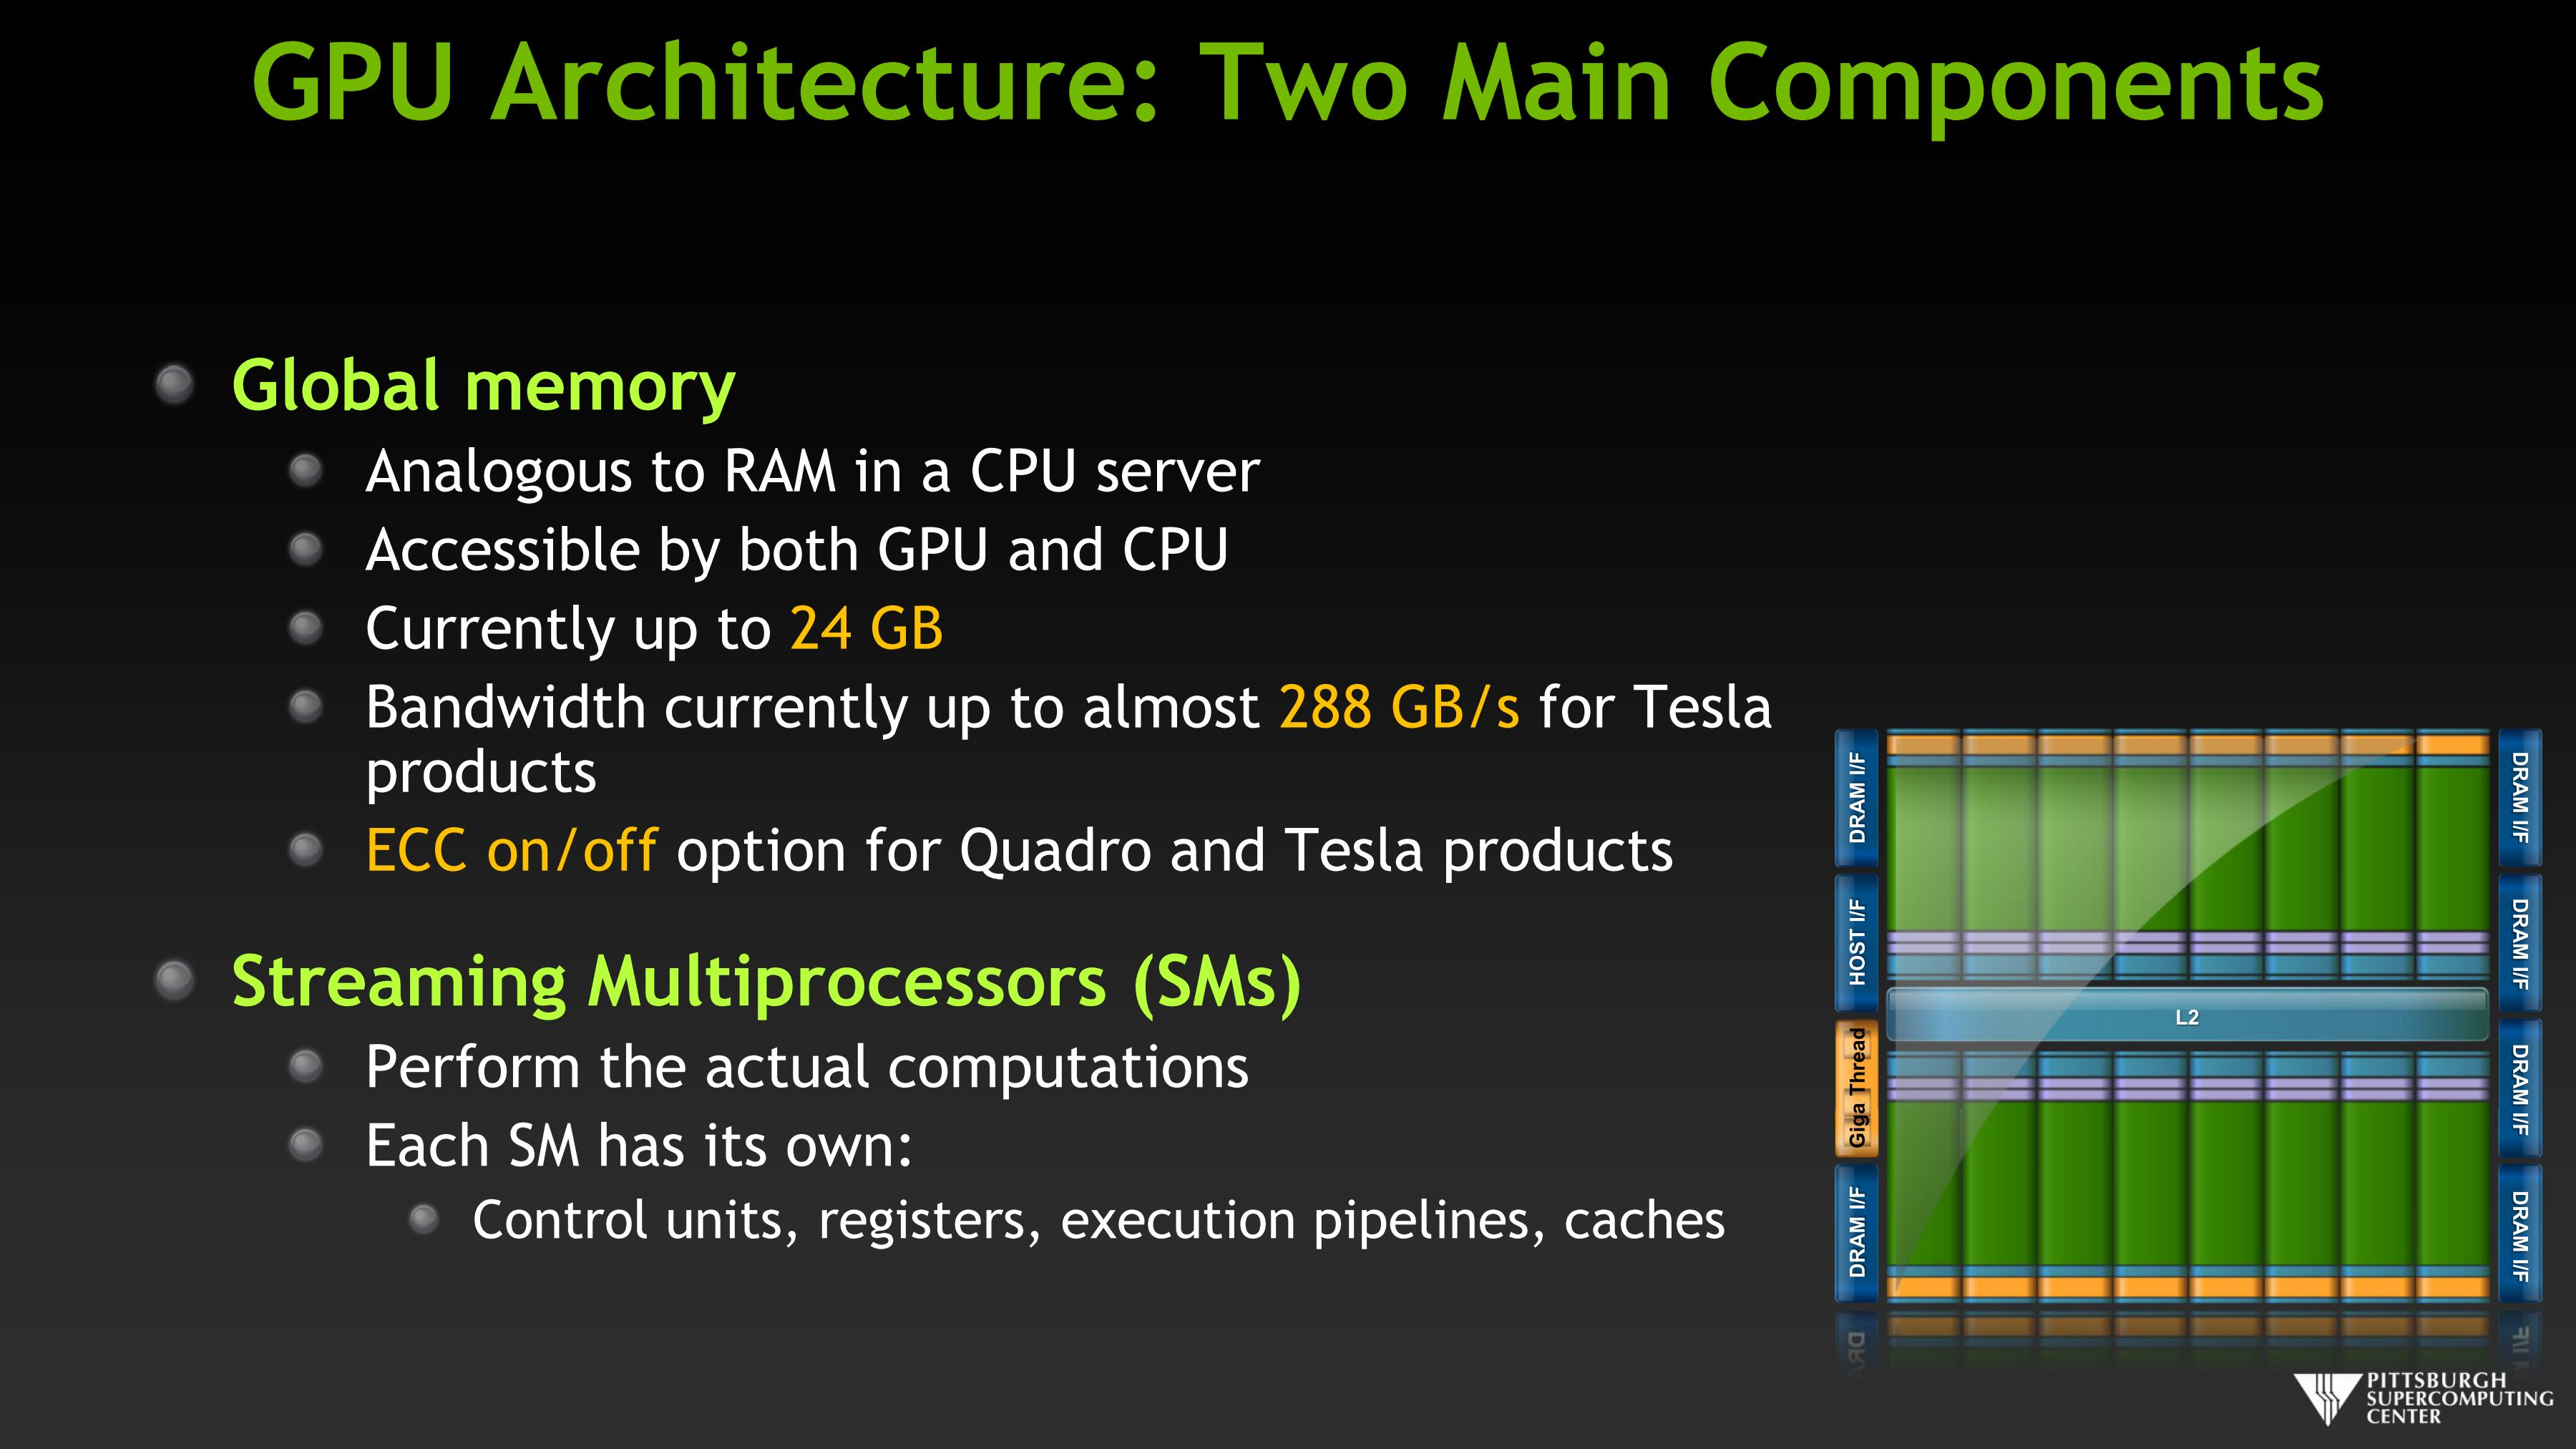 GPU Architecture: Two Main Components